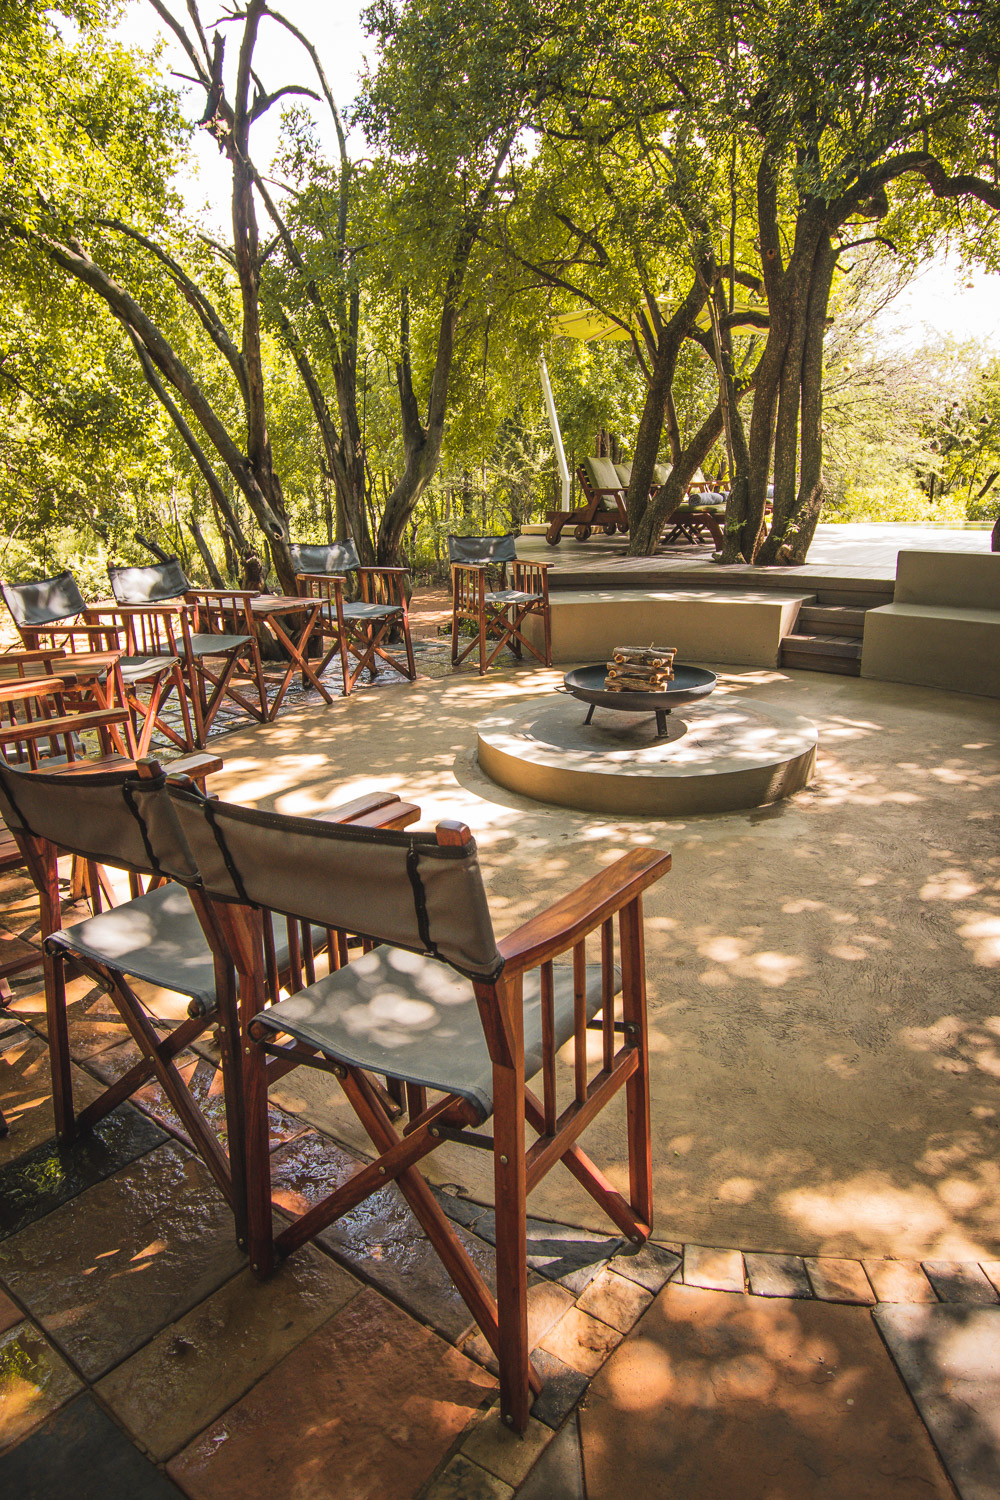 tambuti lodge in Pilanesberg national park